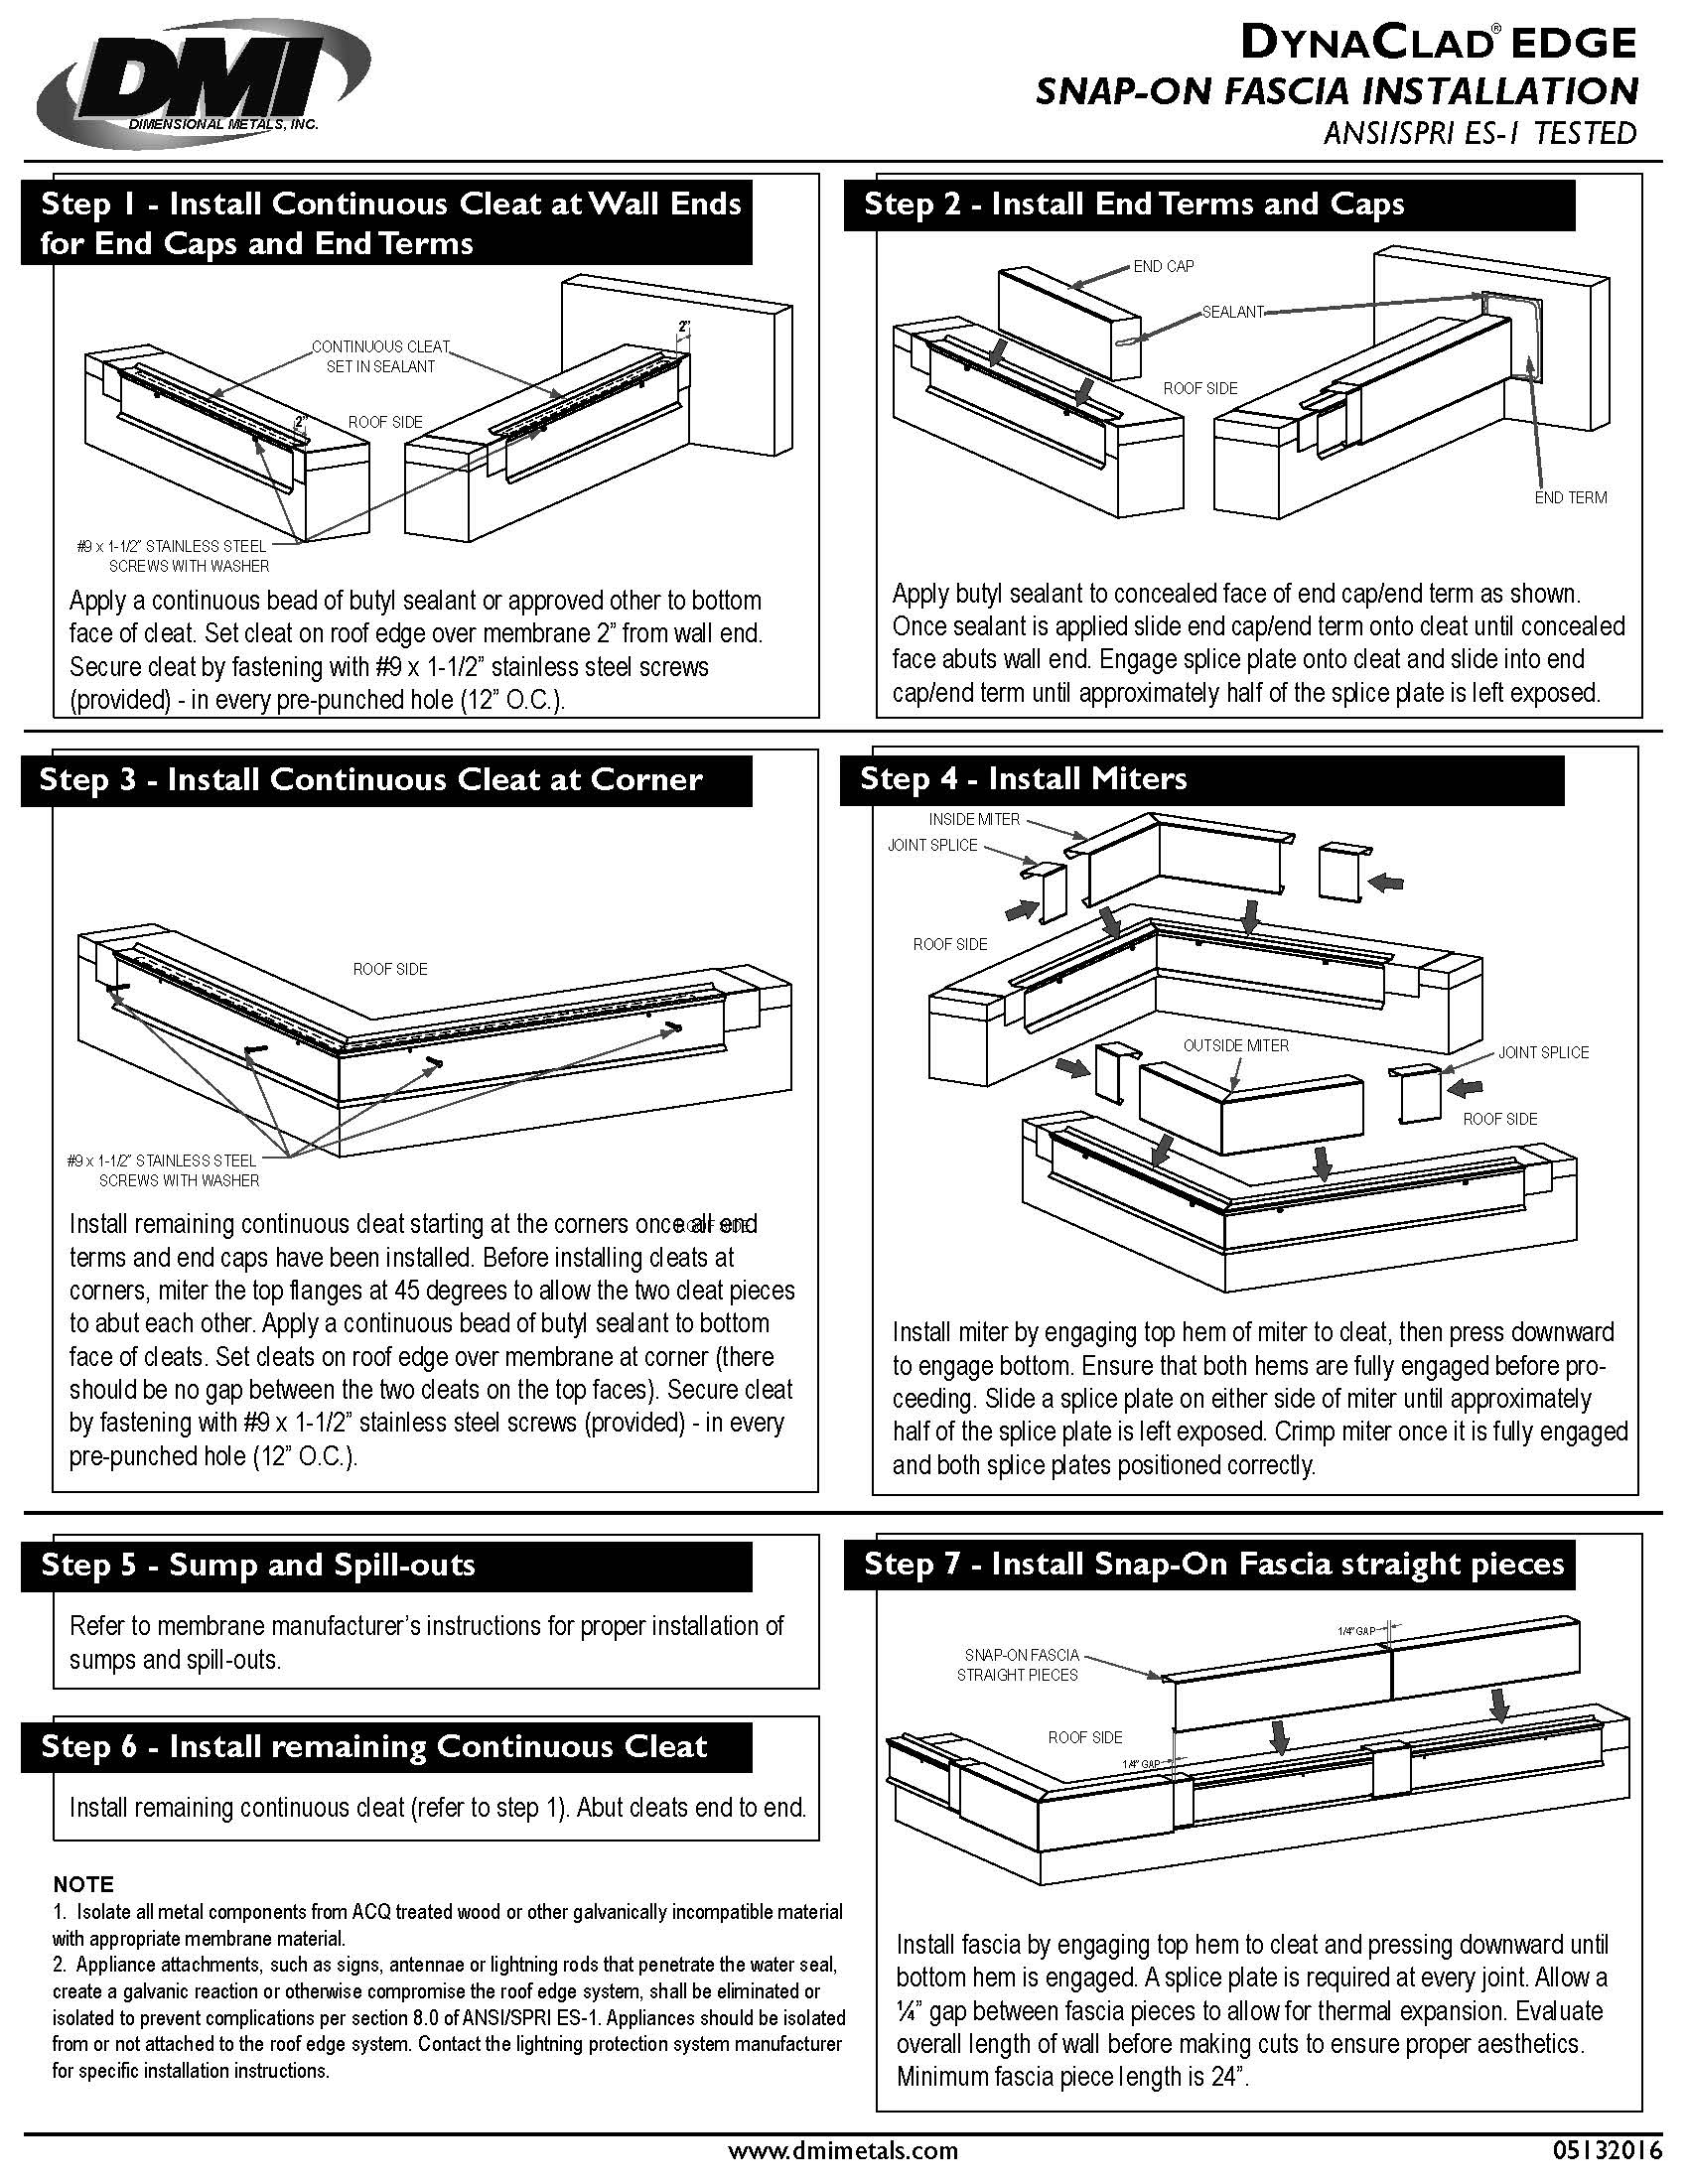 snap-on-fascia-installation-guide